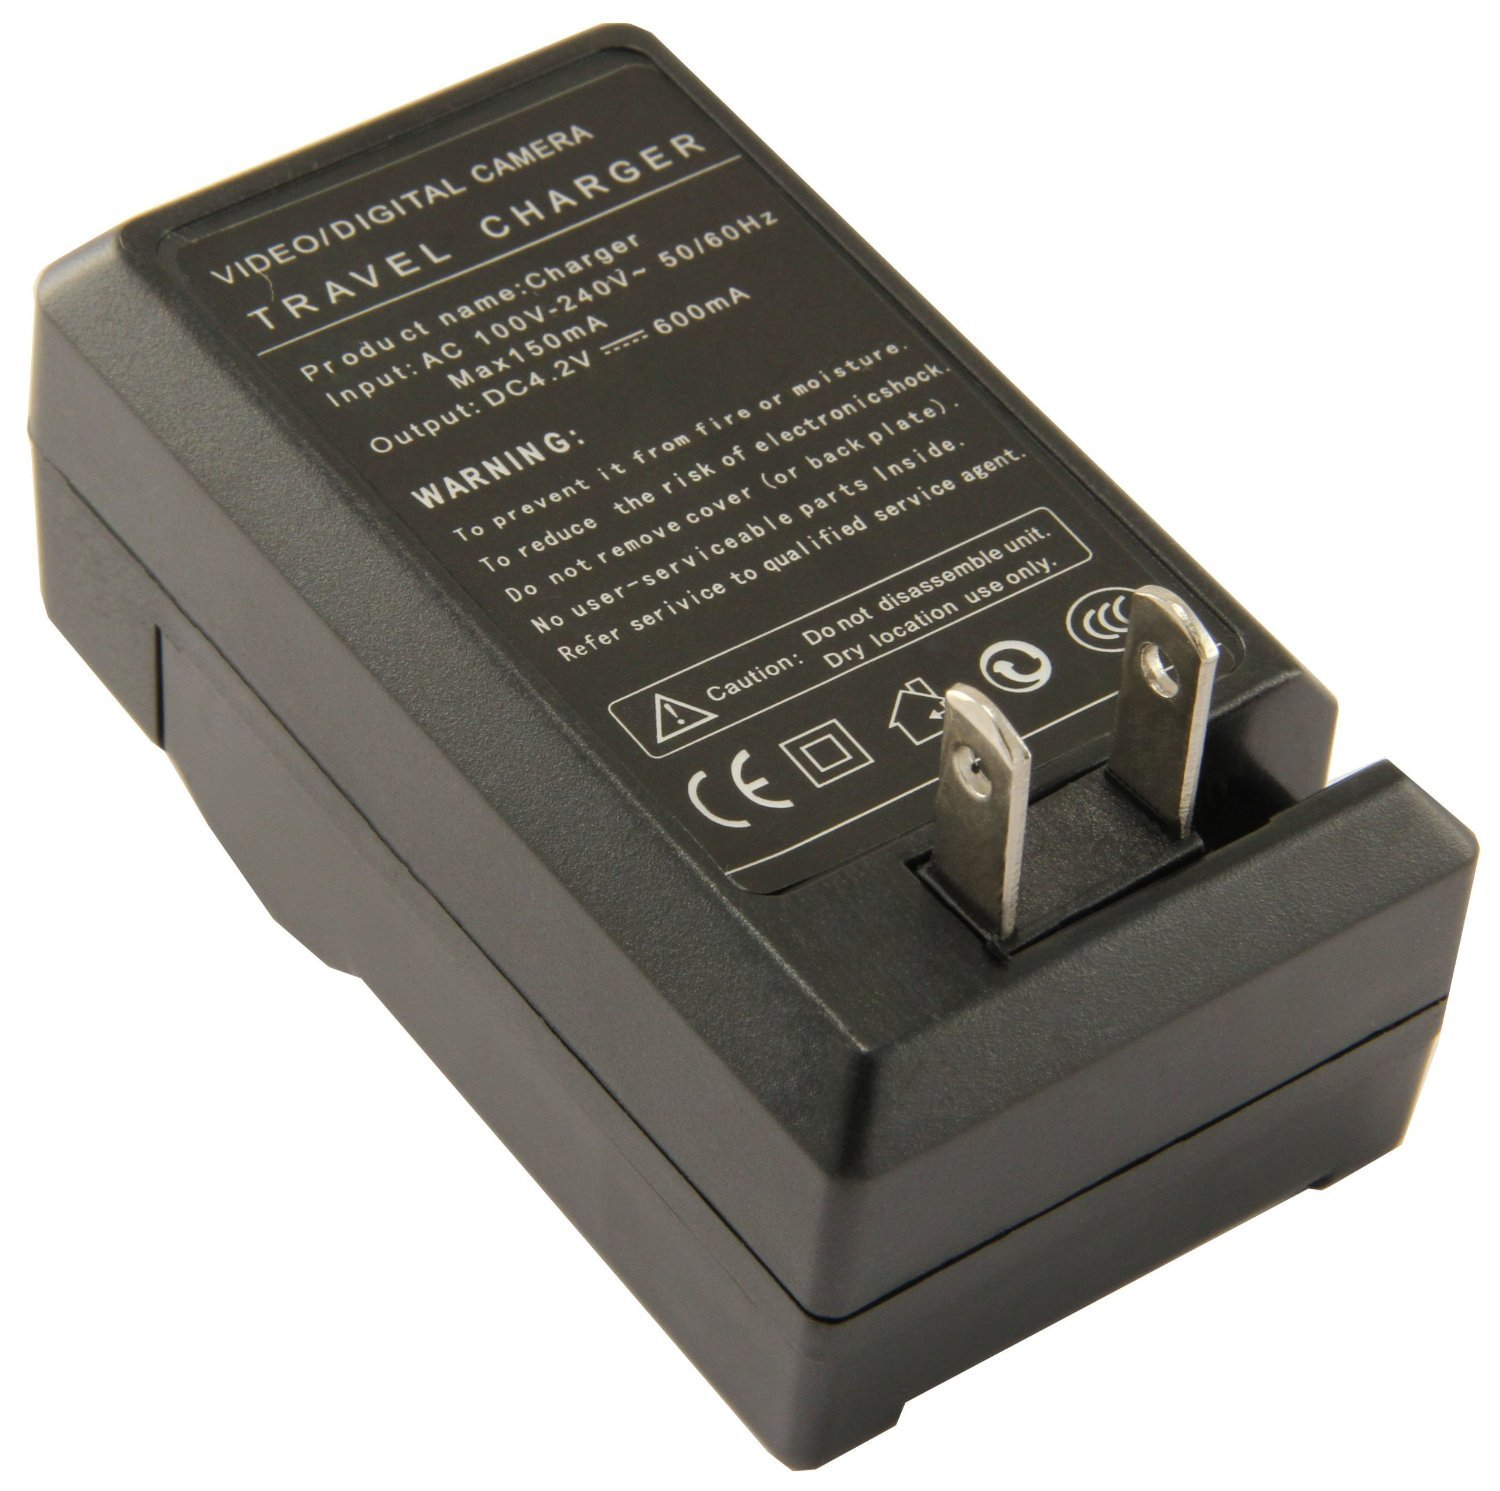 Antoble Battery Charger BN-VF808 for JVC Everio GZ-HD300 GZ-HD300AU GZ-HD300RU GZ-HD300BU GZ-HD320 GZ-HD320BU GZ-MG330 GZ-MG330AU GZ-MG330RU GZ-MG330HU HD Camcorder